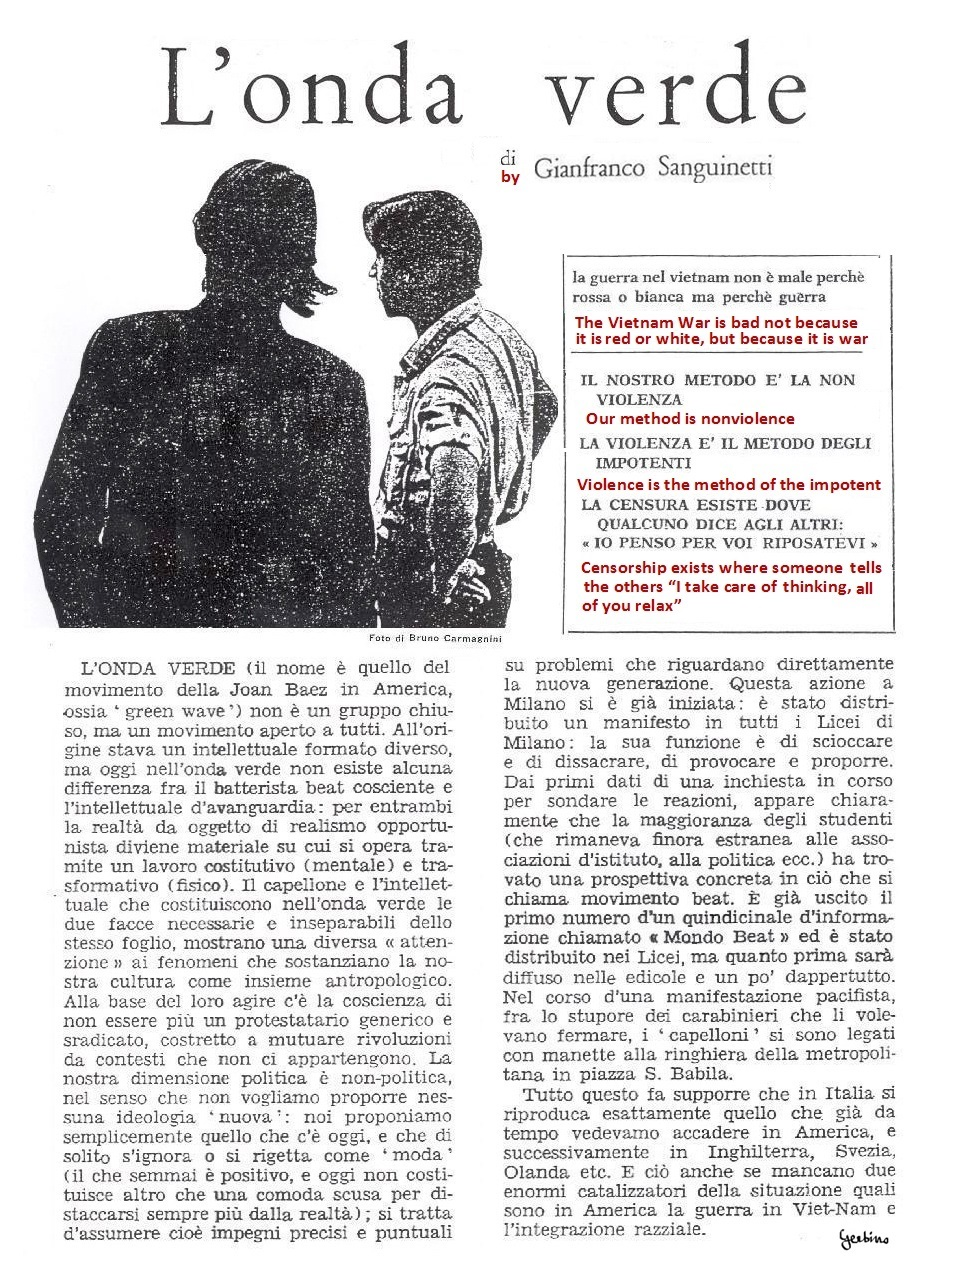 Gianfranco Sanguinetti, a precursor of the Situationists and then a famous representative